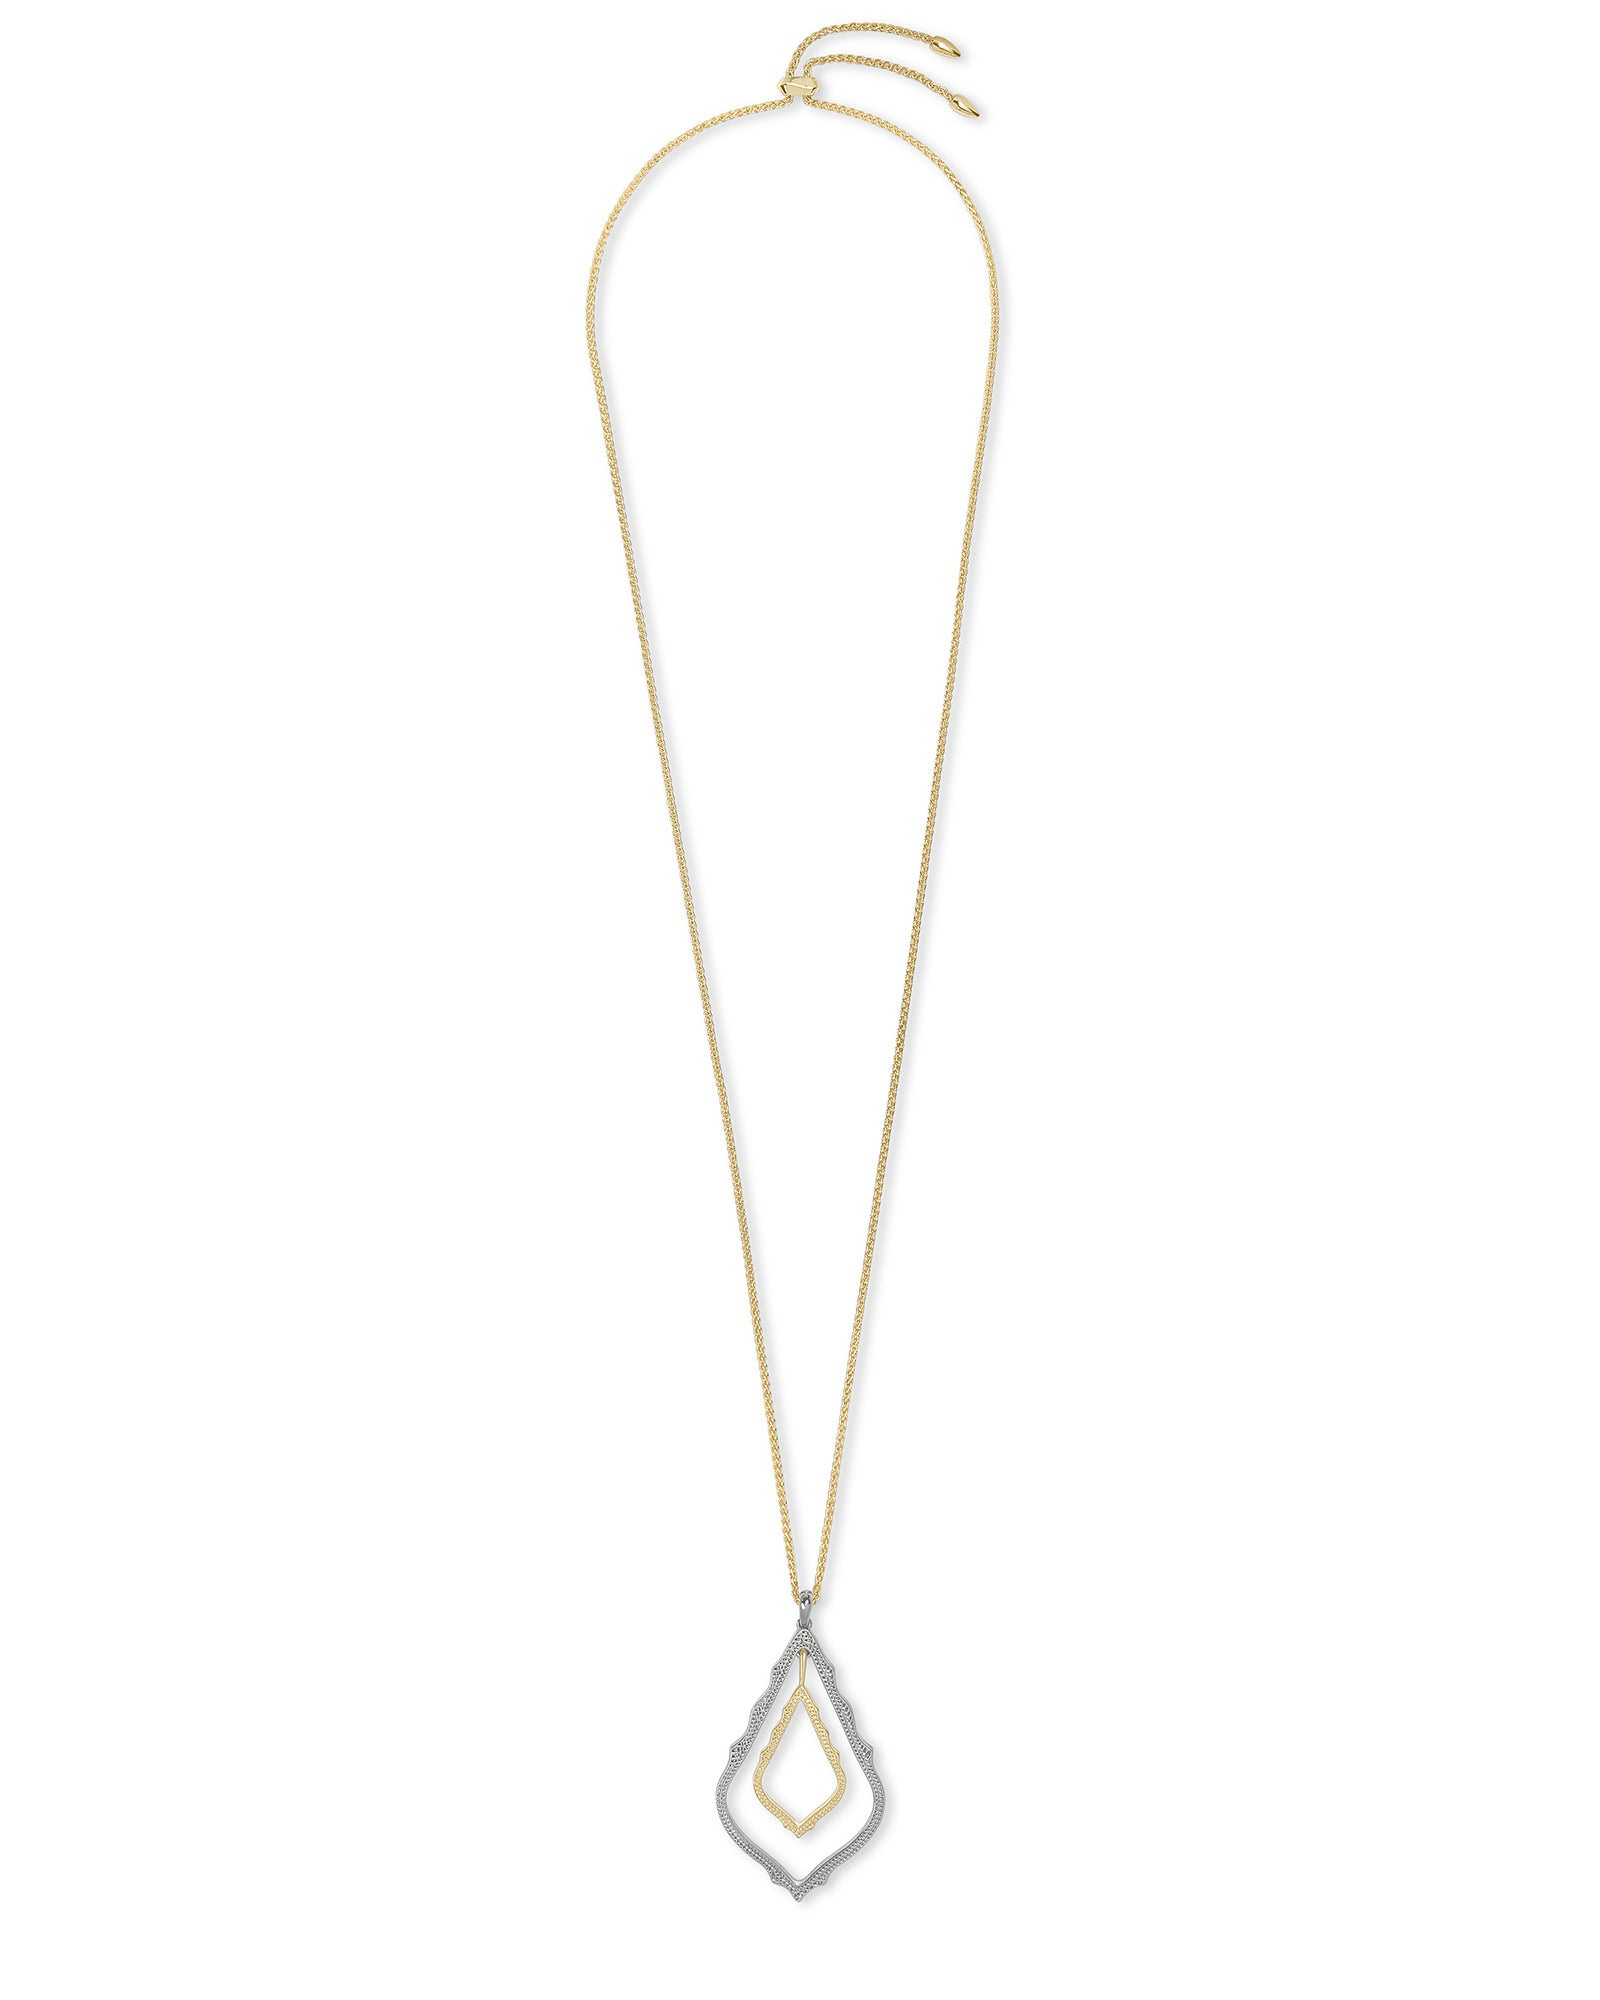 Simon Long Necklace in Rhodium Gold Mix